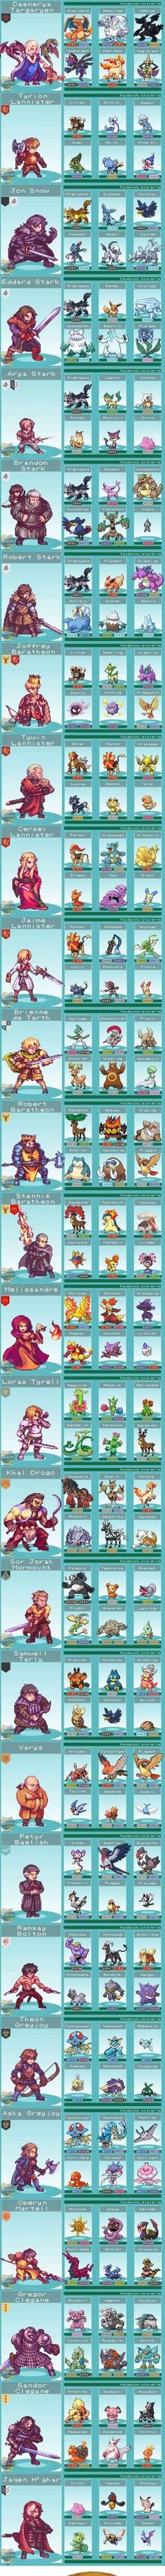 If Game of Thrones Characters Were Pokémon Trainers #infographic #GoT